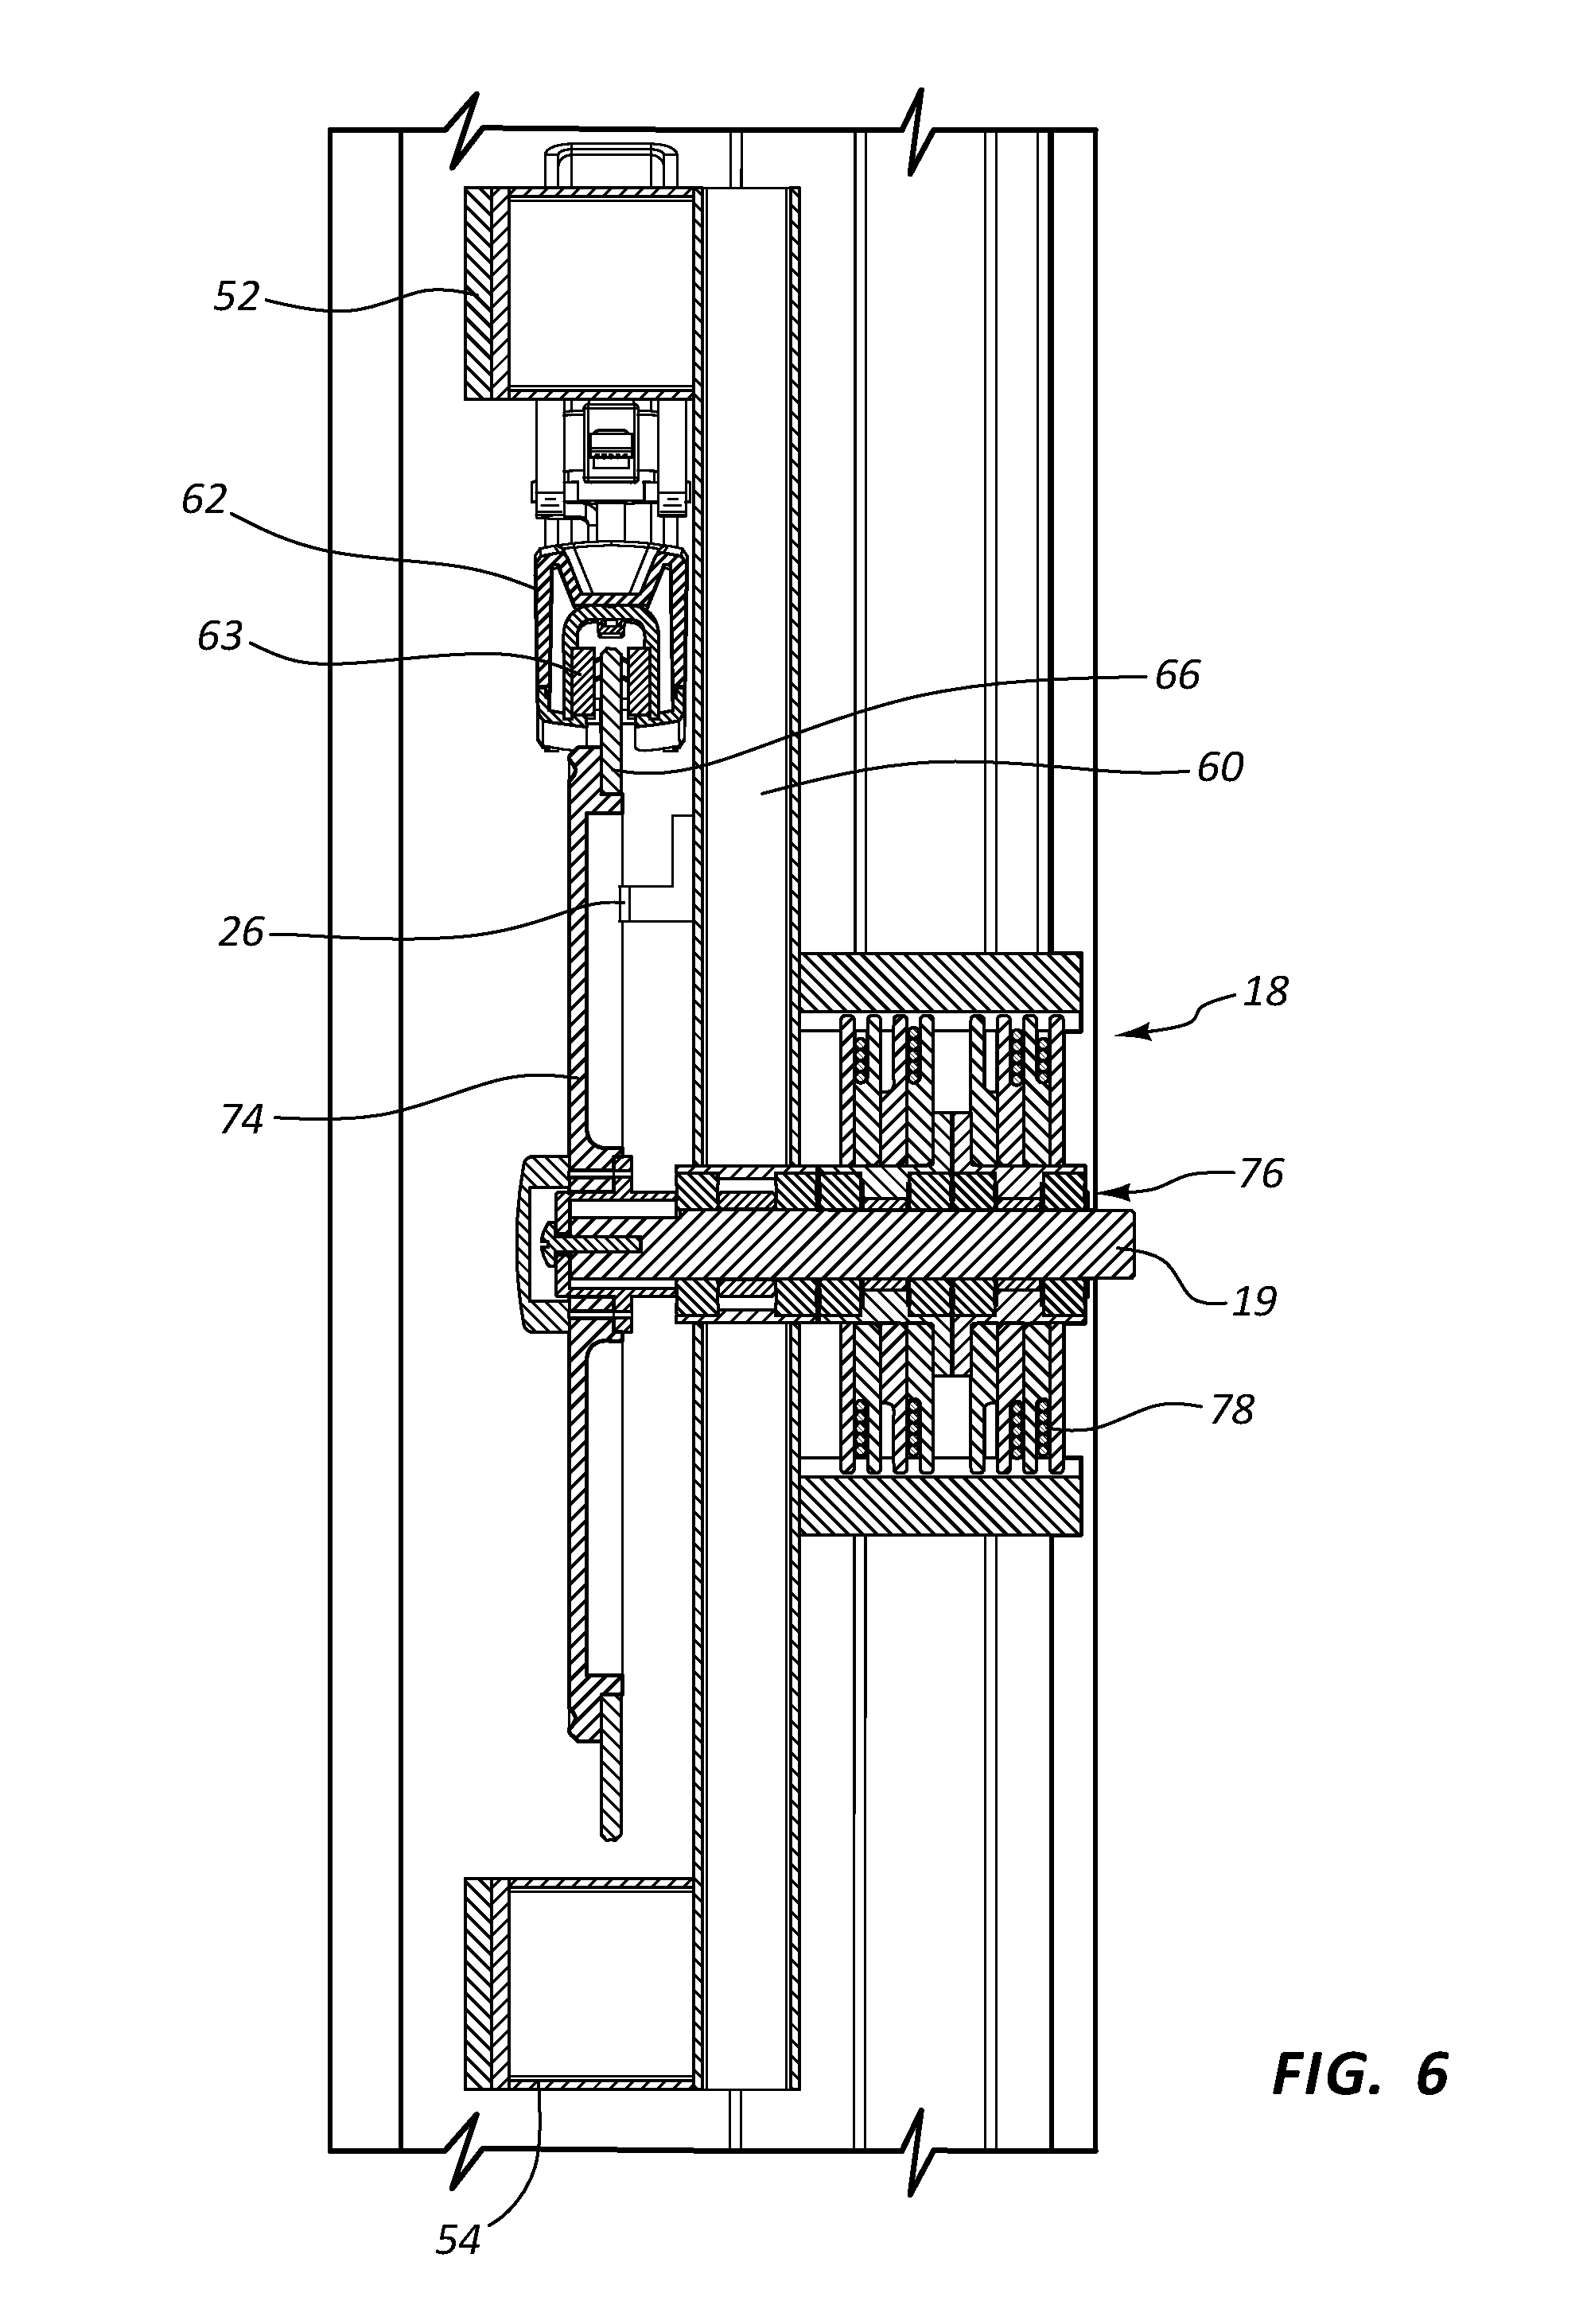 merz drum switch wiring diagram us20150182773a1 magnetic resistance mechanism in a cable machine  us20150182773a1 magnetic resistance